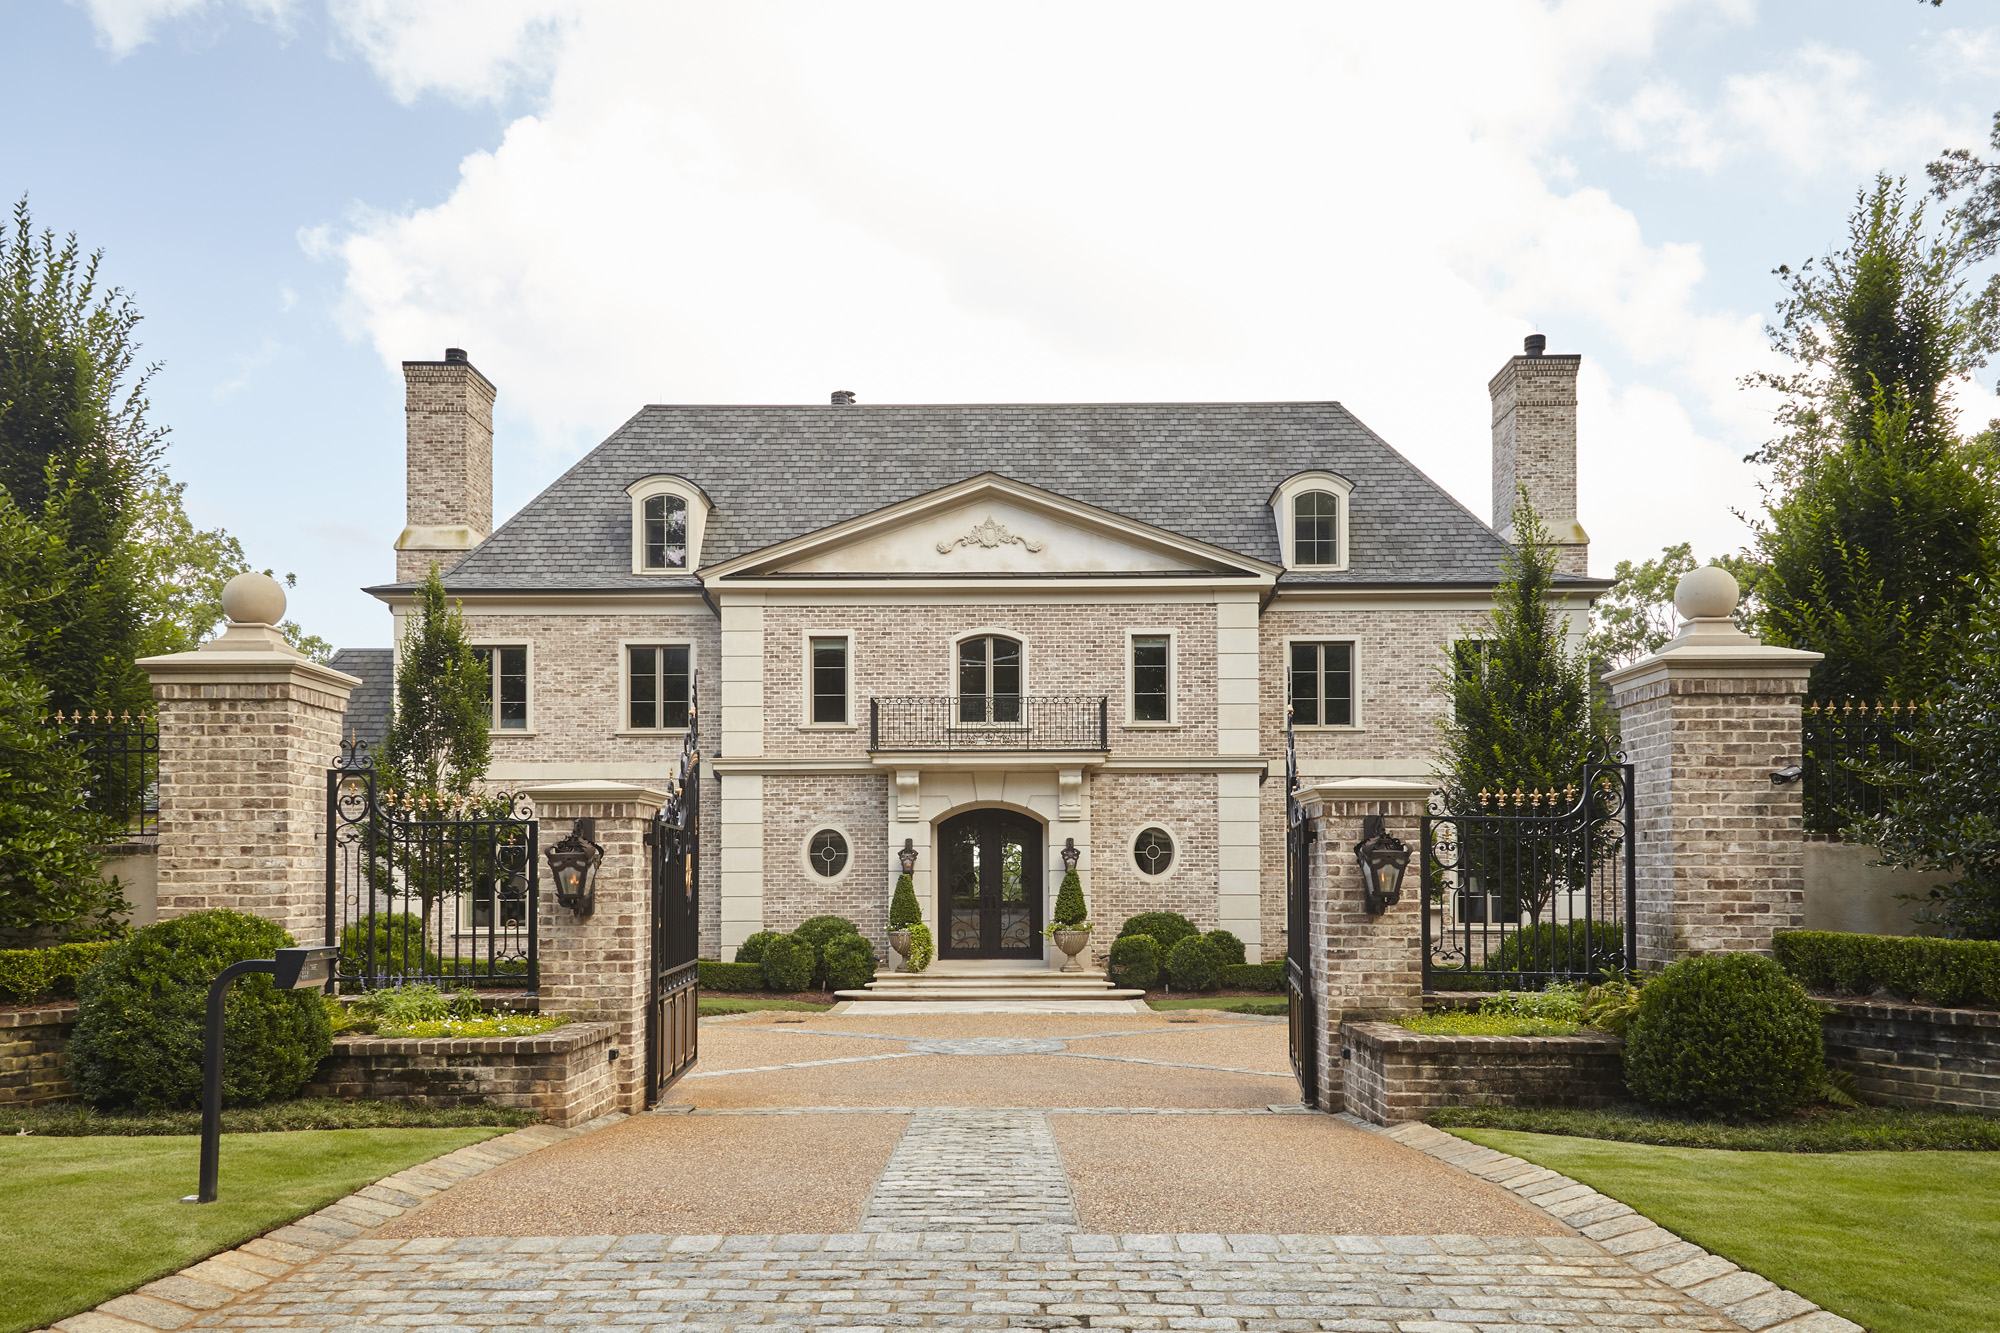 Stately formality in European inspired house from Harrison Design with gated entry brick facade and formal landscape